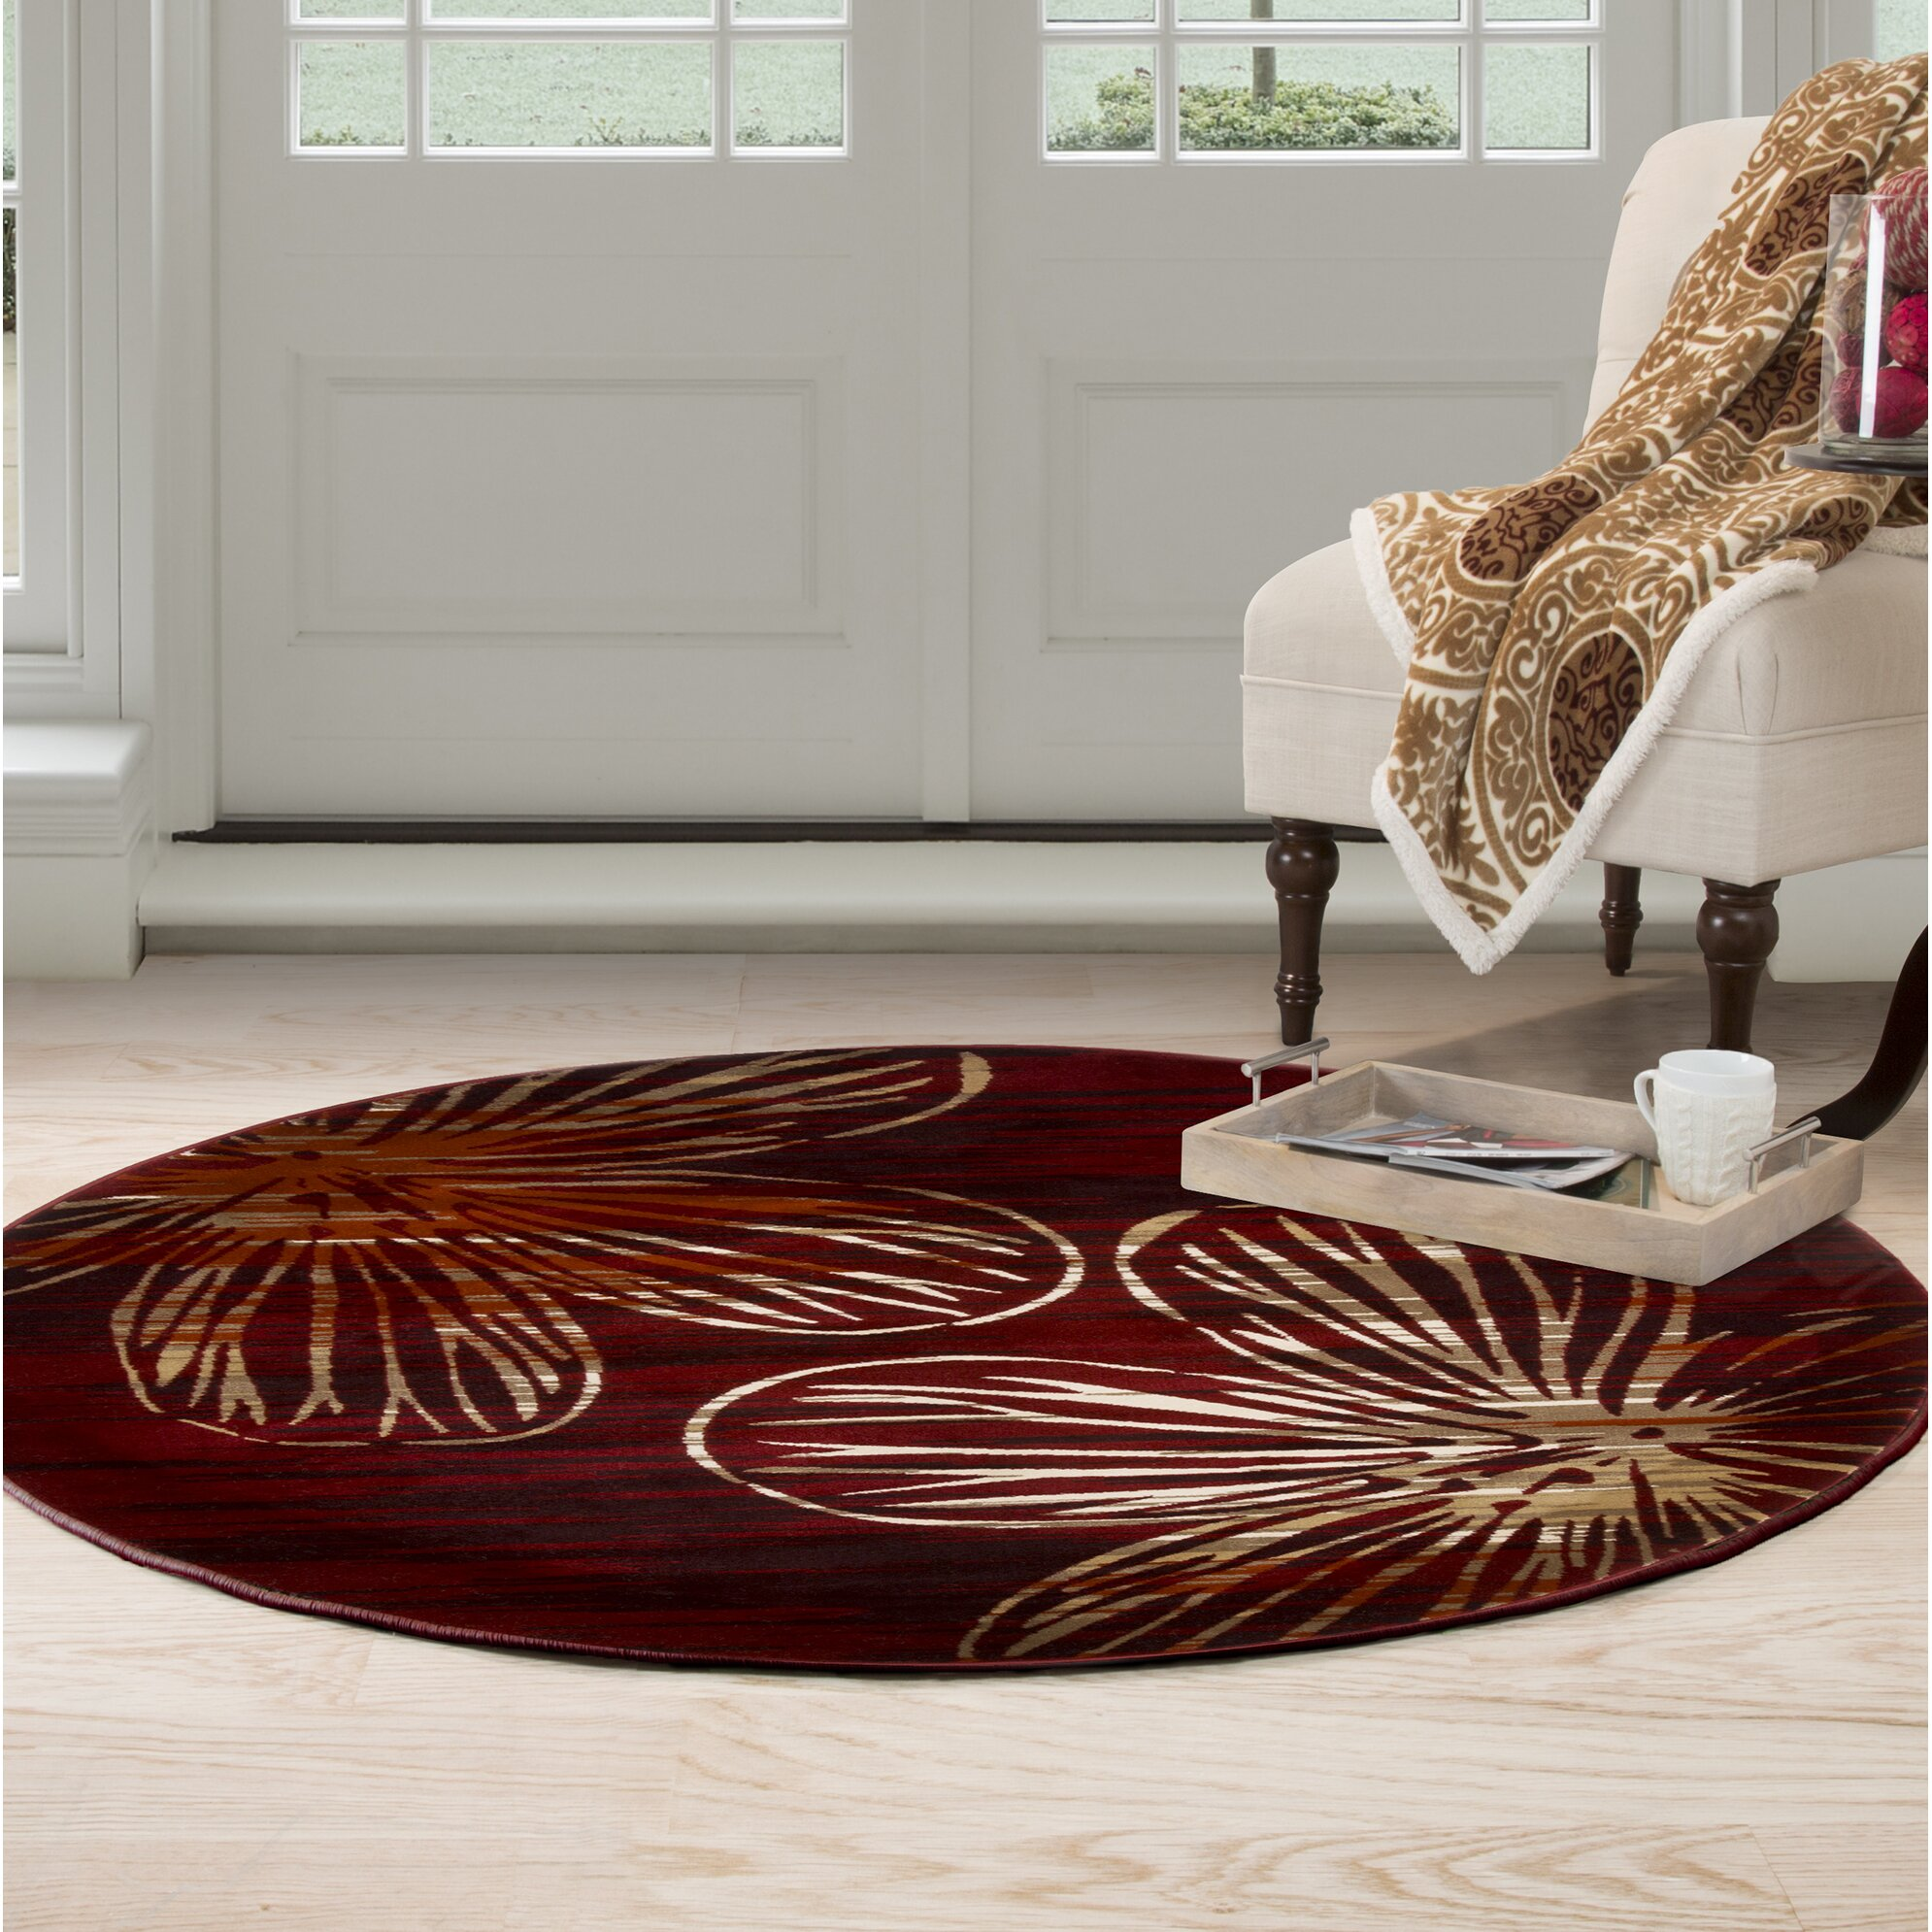 Plyh modern red area rug wayfair for Red area rugs contemporary